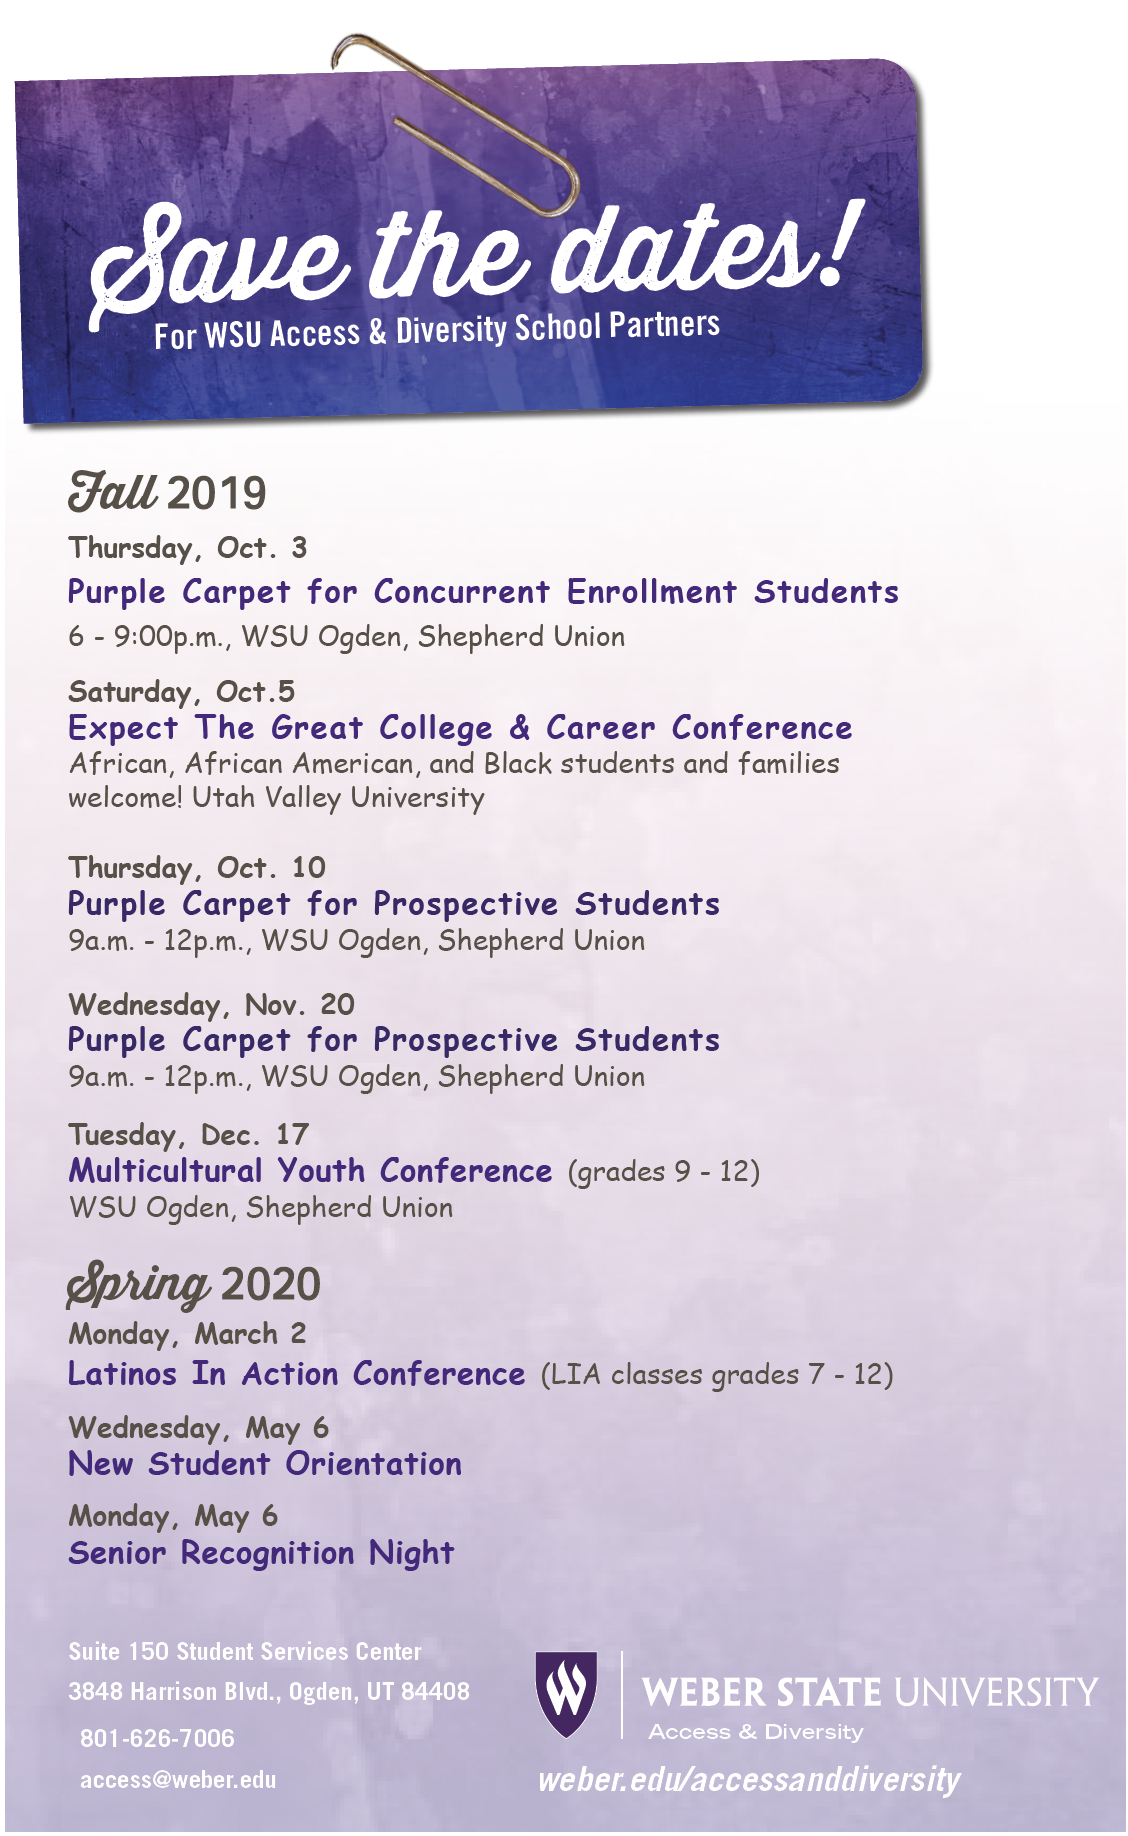 Save the Dates For WSU Access & Diversity School Partners